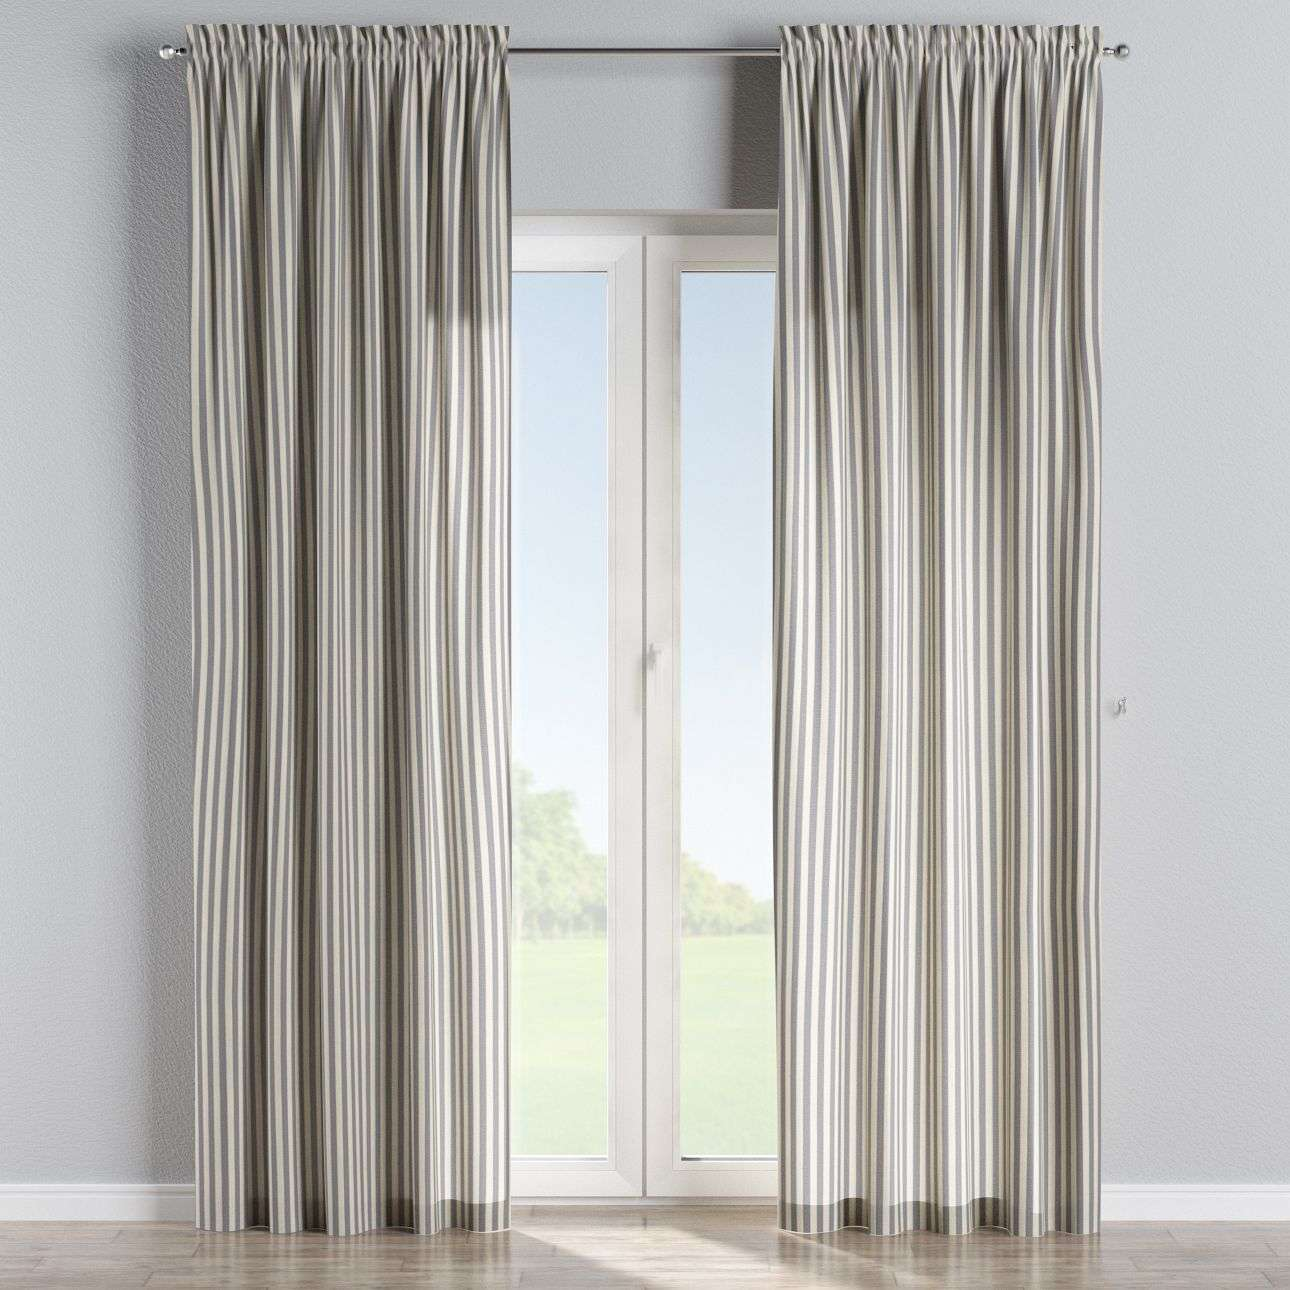 Slot and frill curtains 130 × 260 cm (51 × 102 inch) in collection Quadro, fabric: 136-02